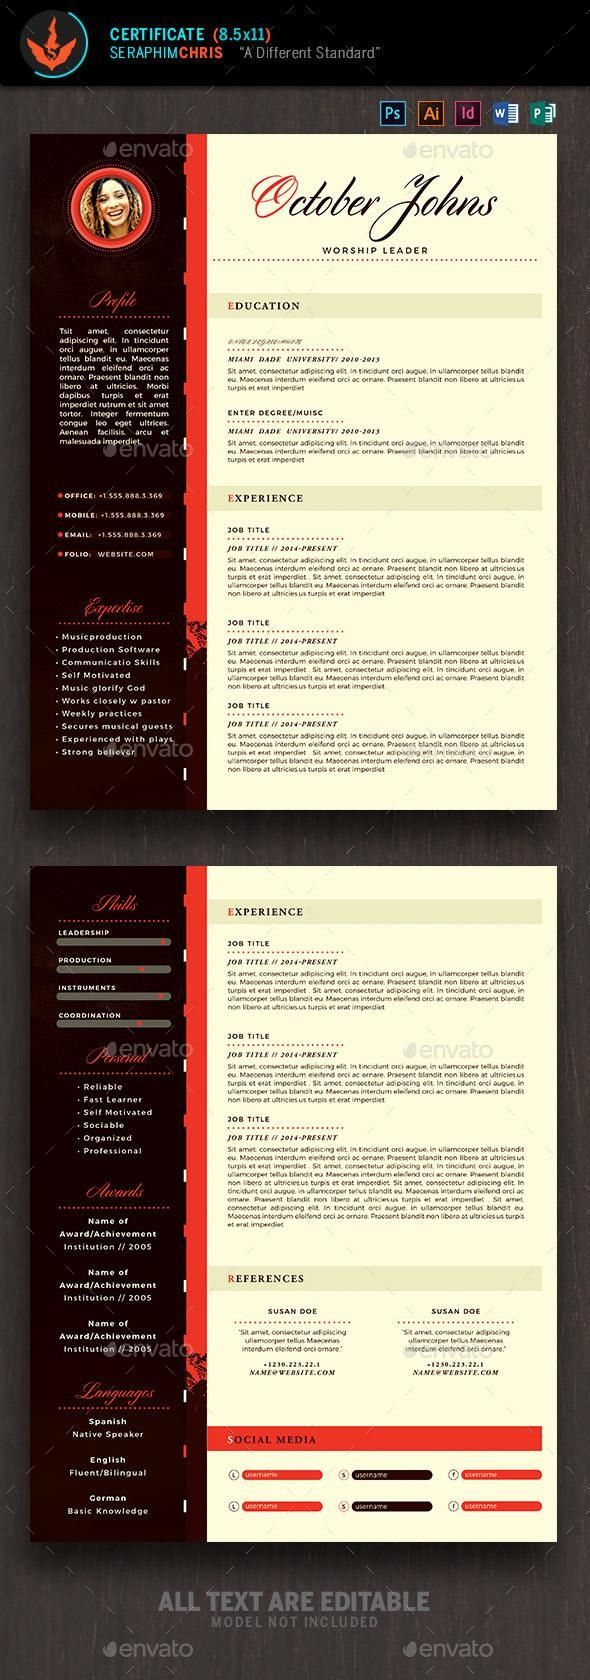 King Modern Church Resume Template Stationery PrintDesign Design BestDesignResources